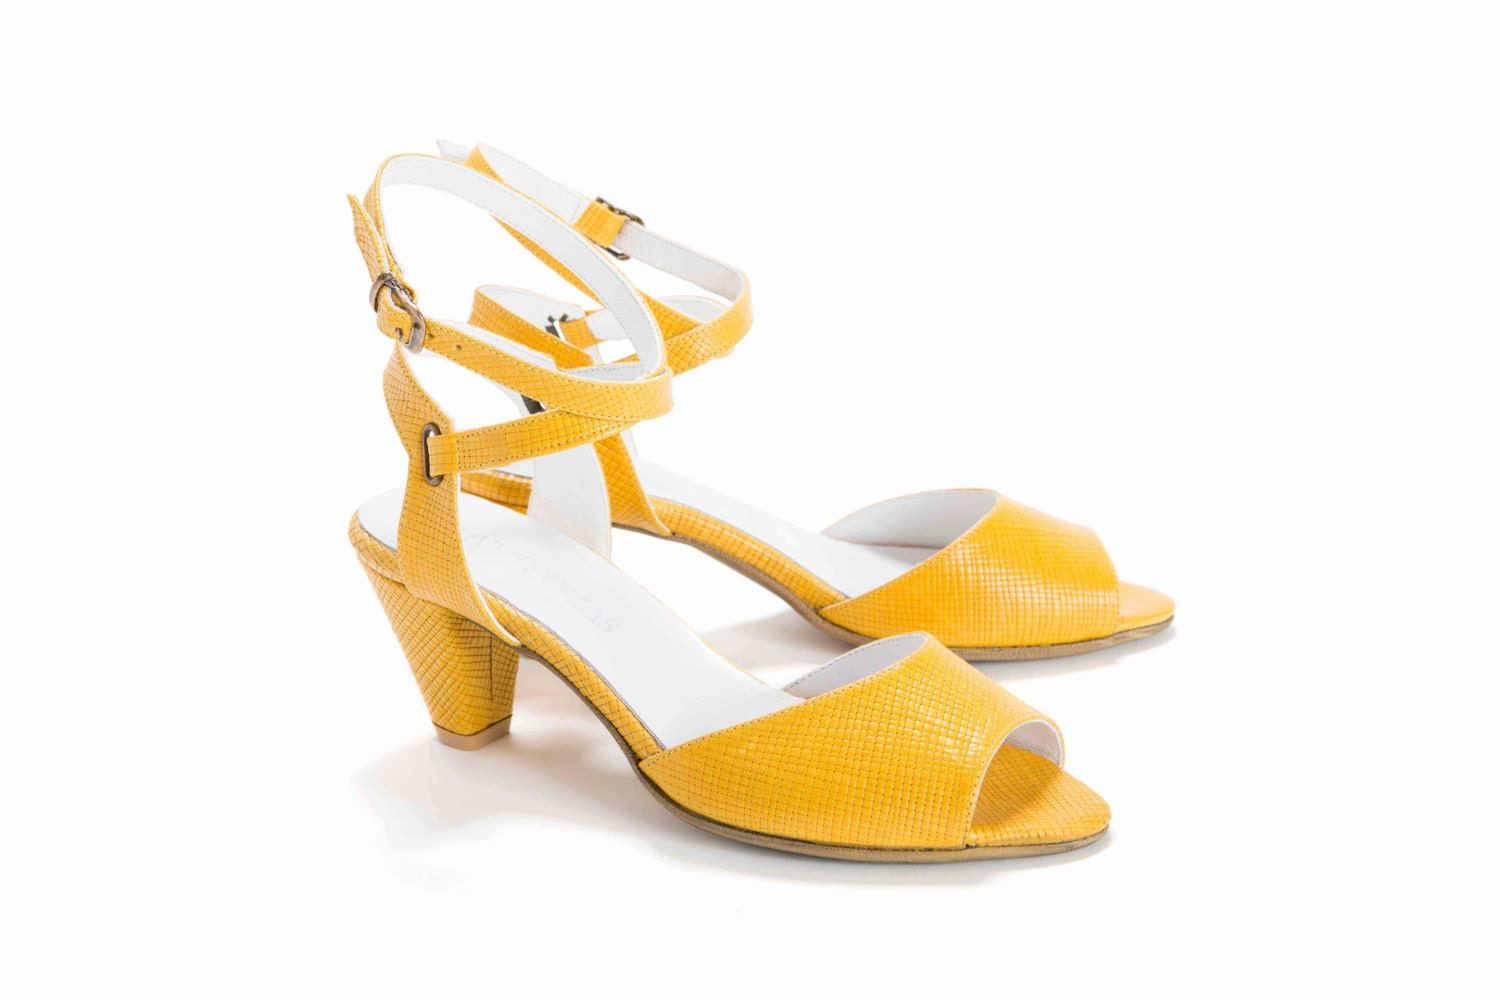 Womens Yellow Printed Leather Peep Toe High Heel Sandal with Ankle Strap // US sizes 5-10 - OliveThomasShoes